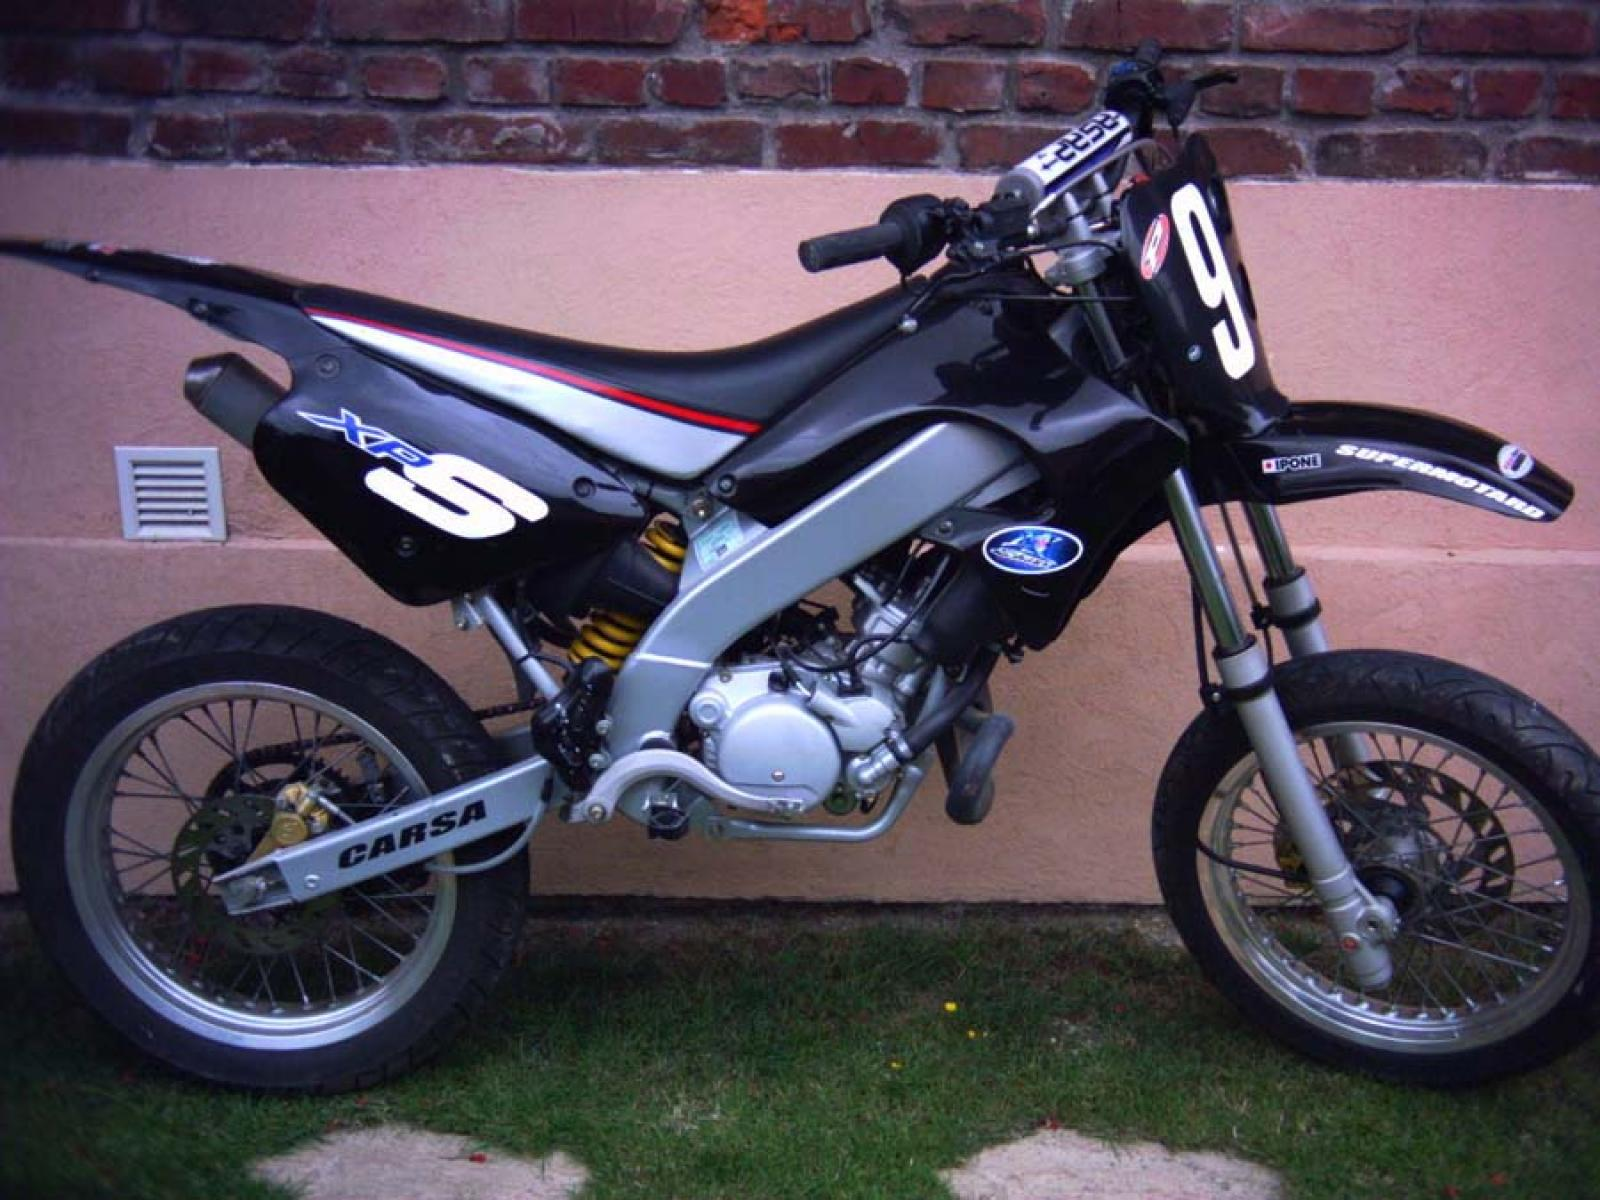 Peugeot XP6 50 Supermotard 2006 images #120121